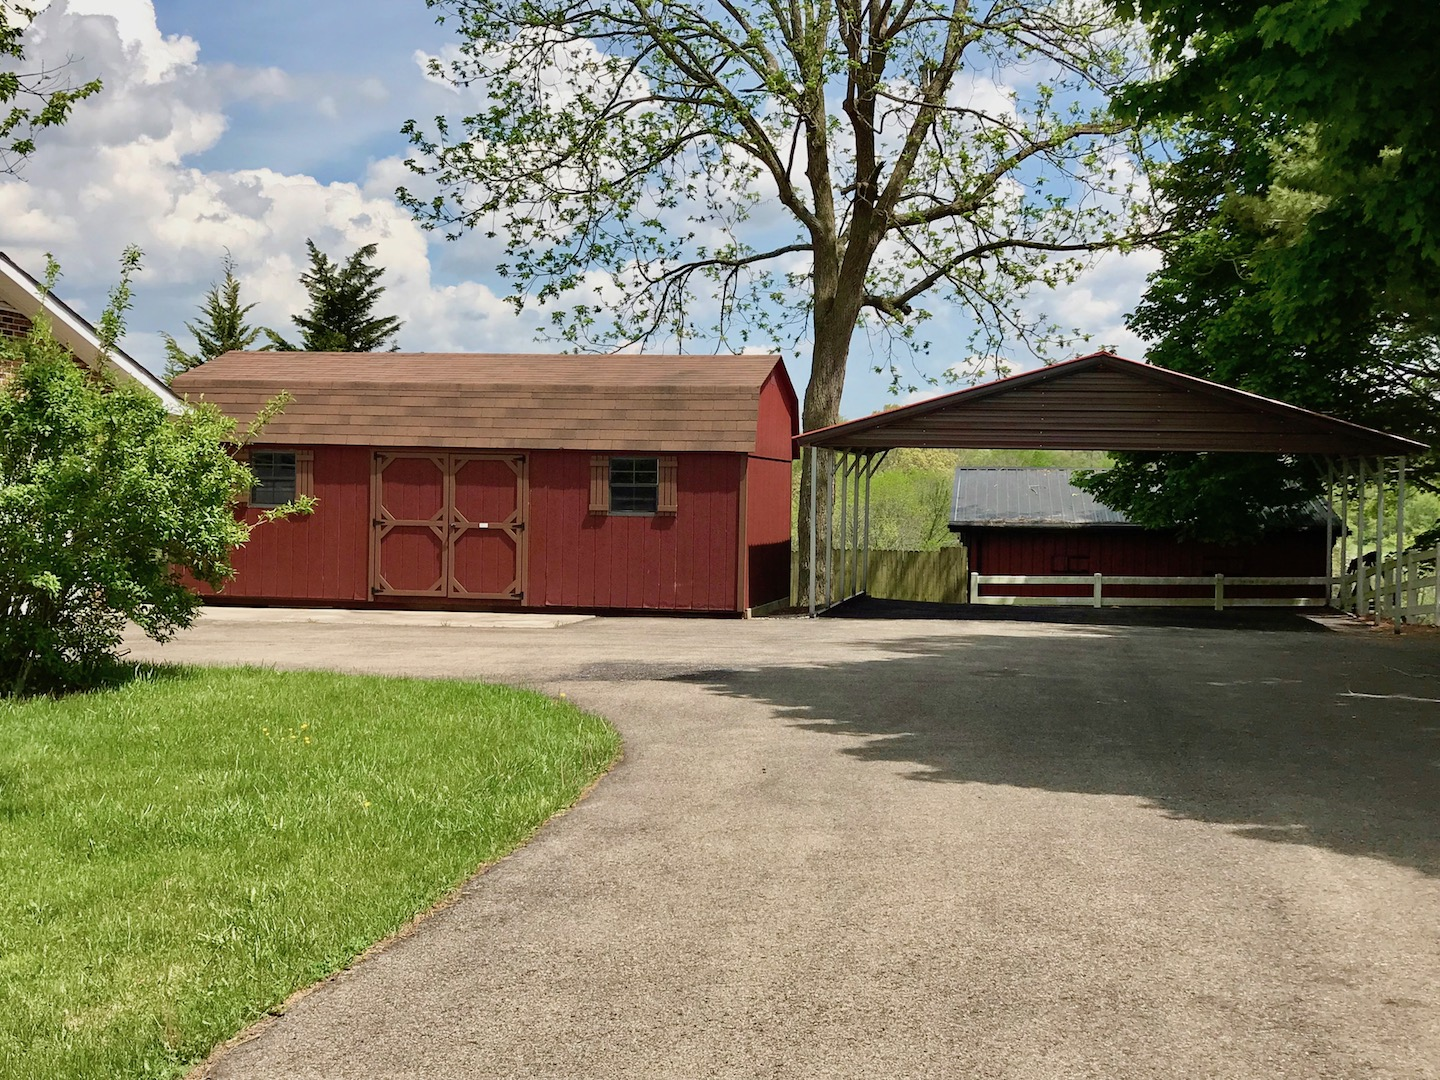 Exterior-Driveway showing Carport and Storage Shed.jpg